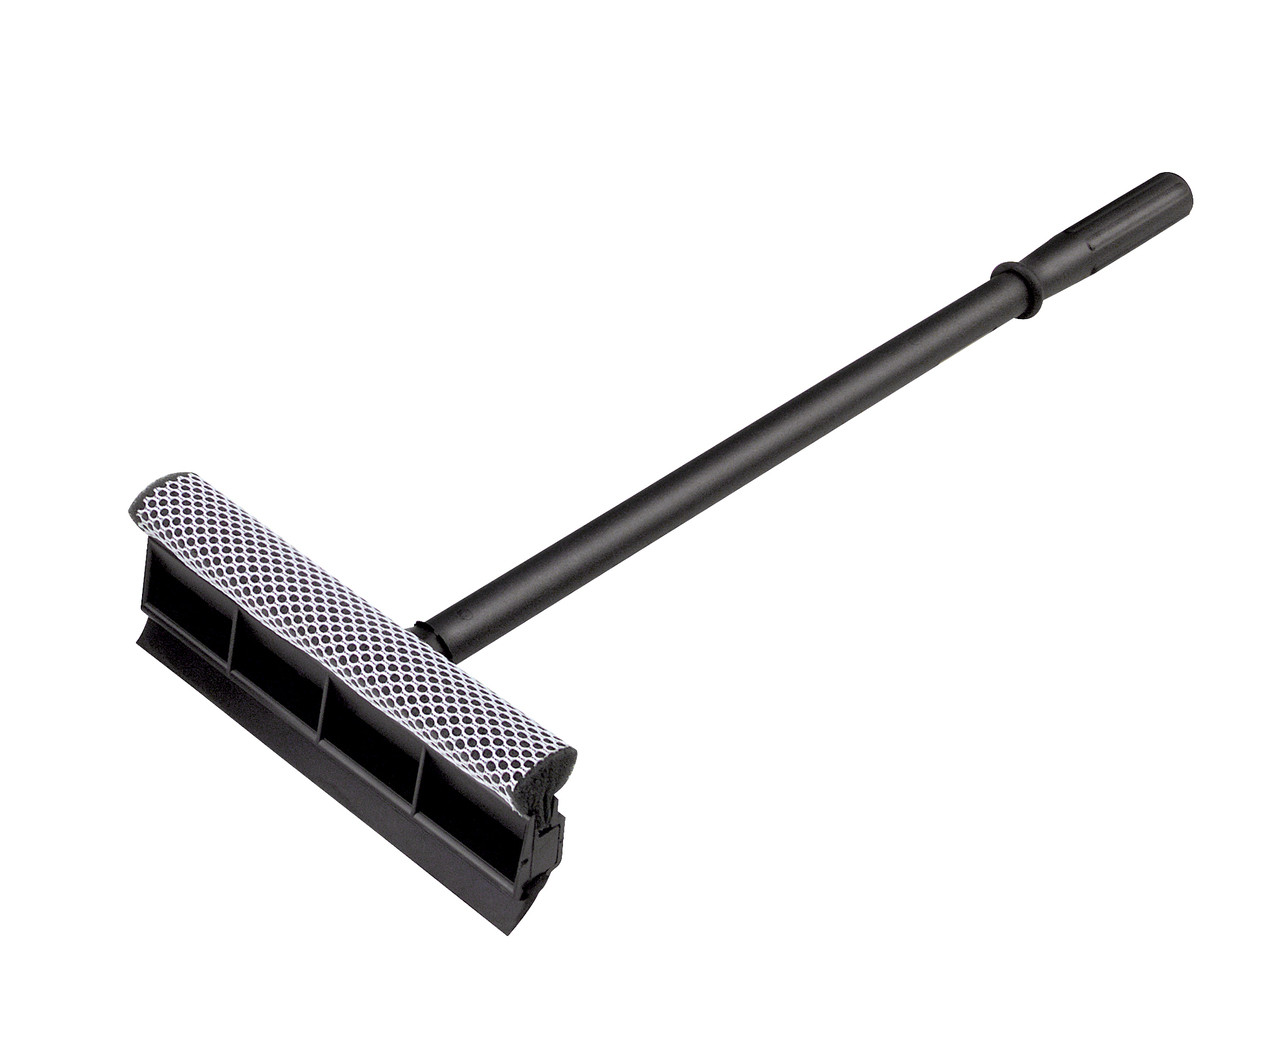 Car and Auto Windshield Squeegee 790006 (Case of 6)